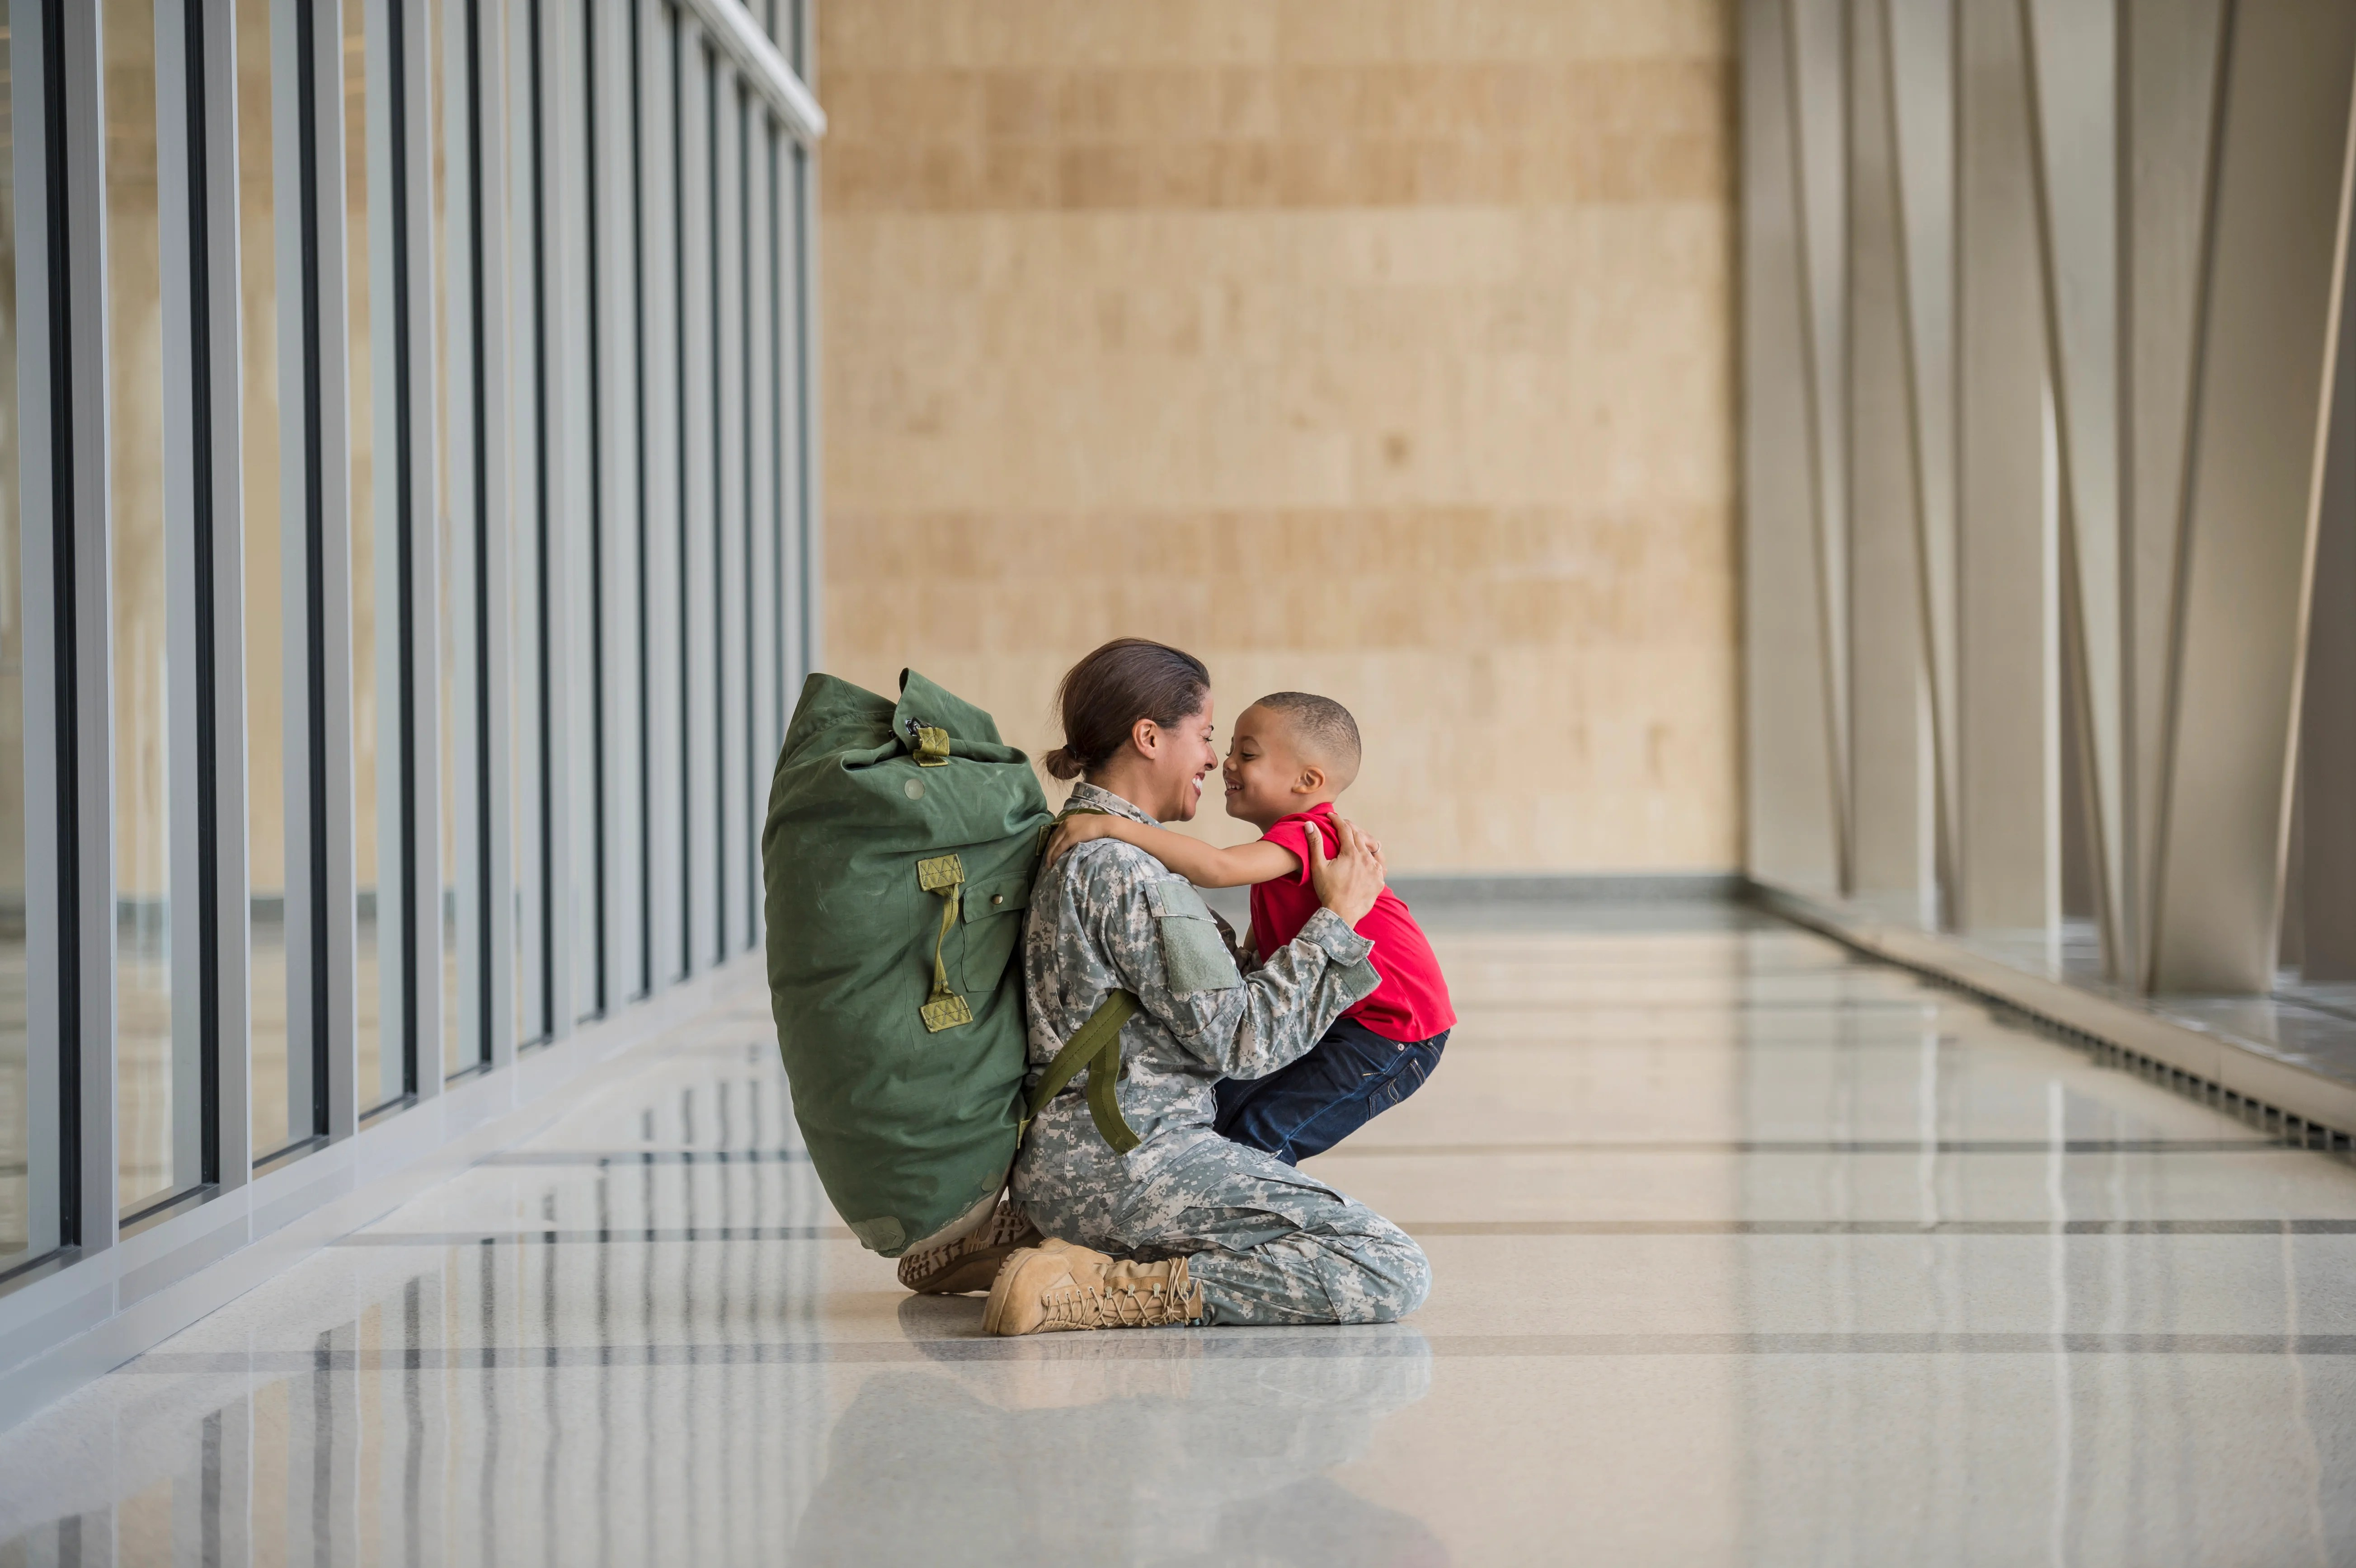 Money-saving Veterans Day deals and travel perks for the military and veterans